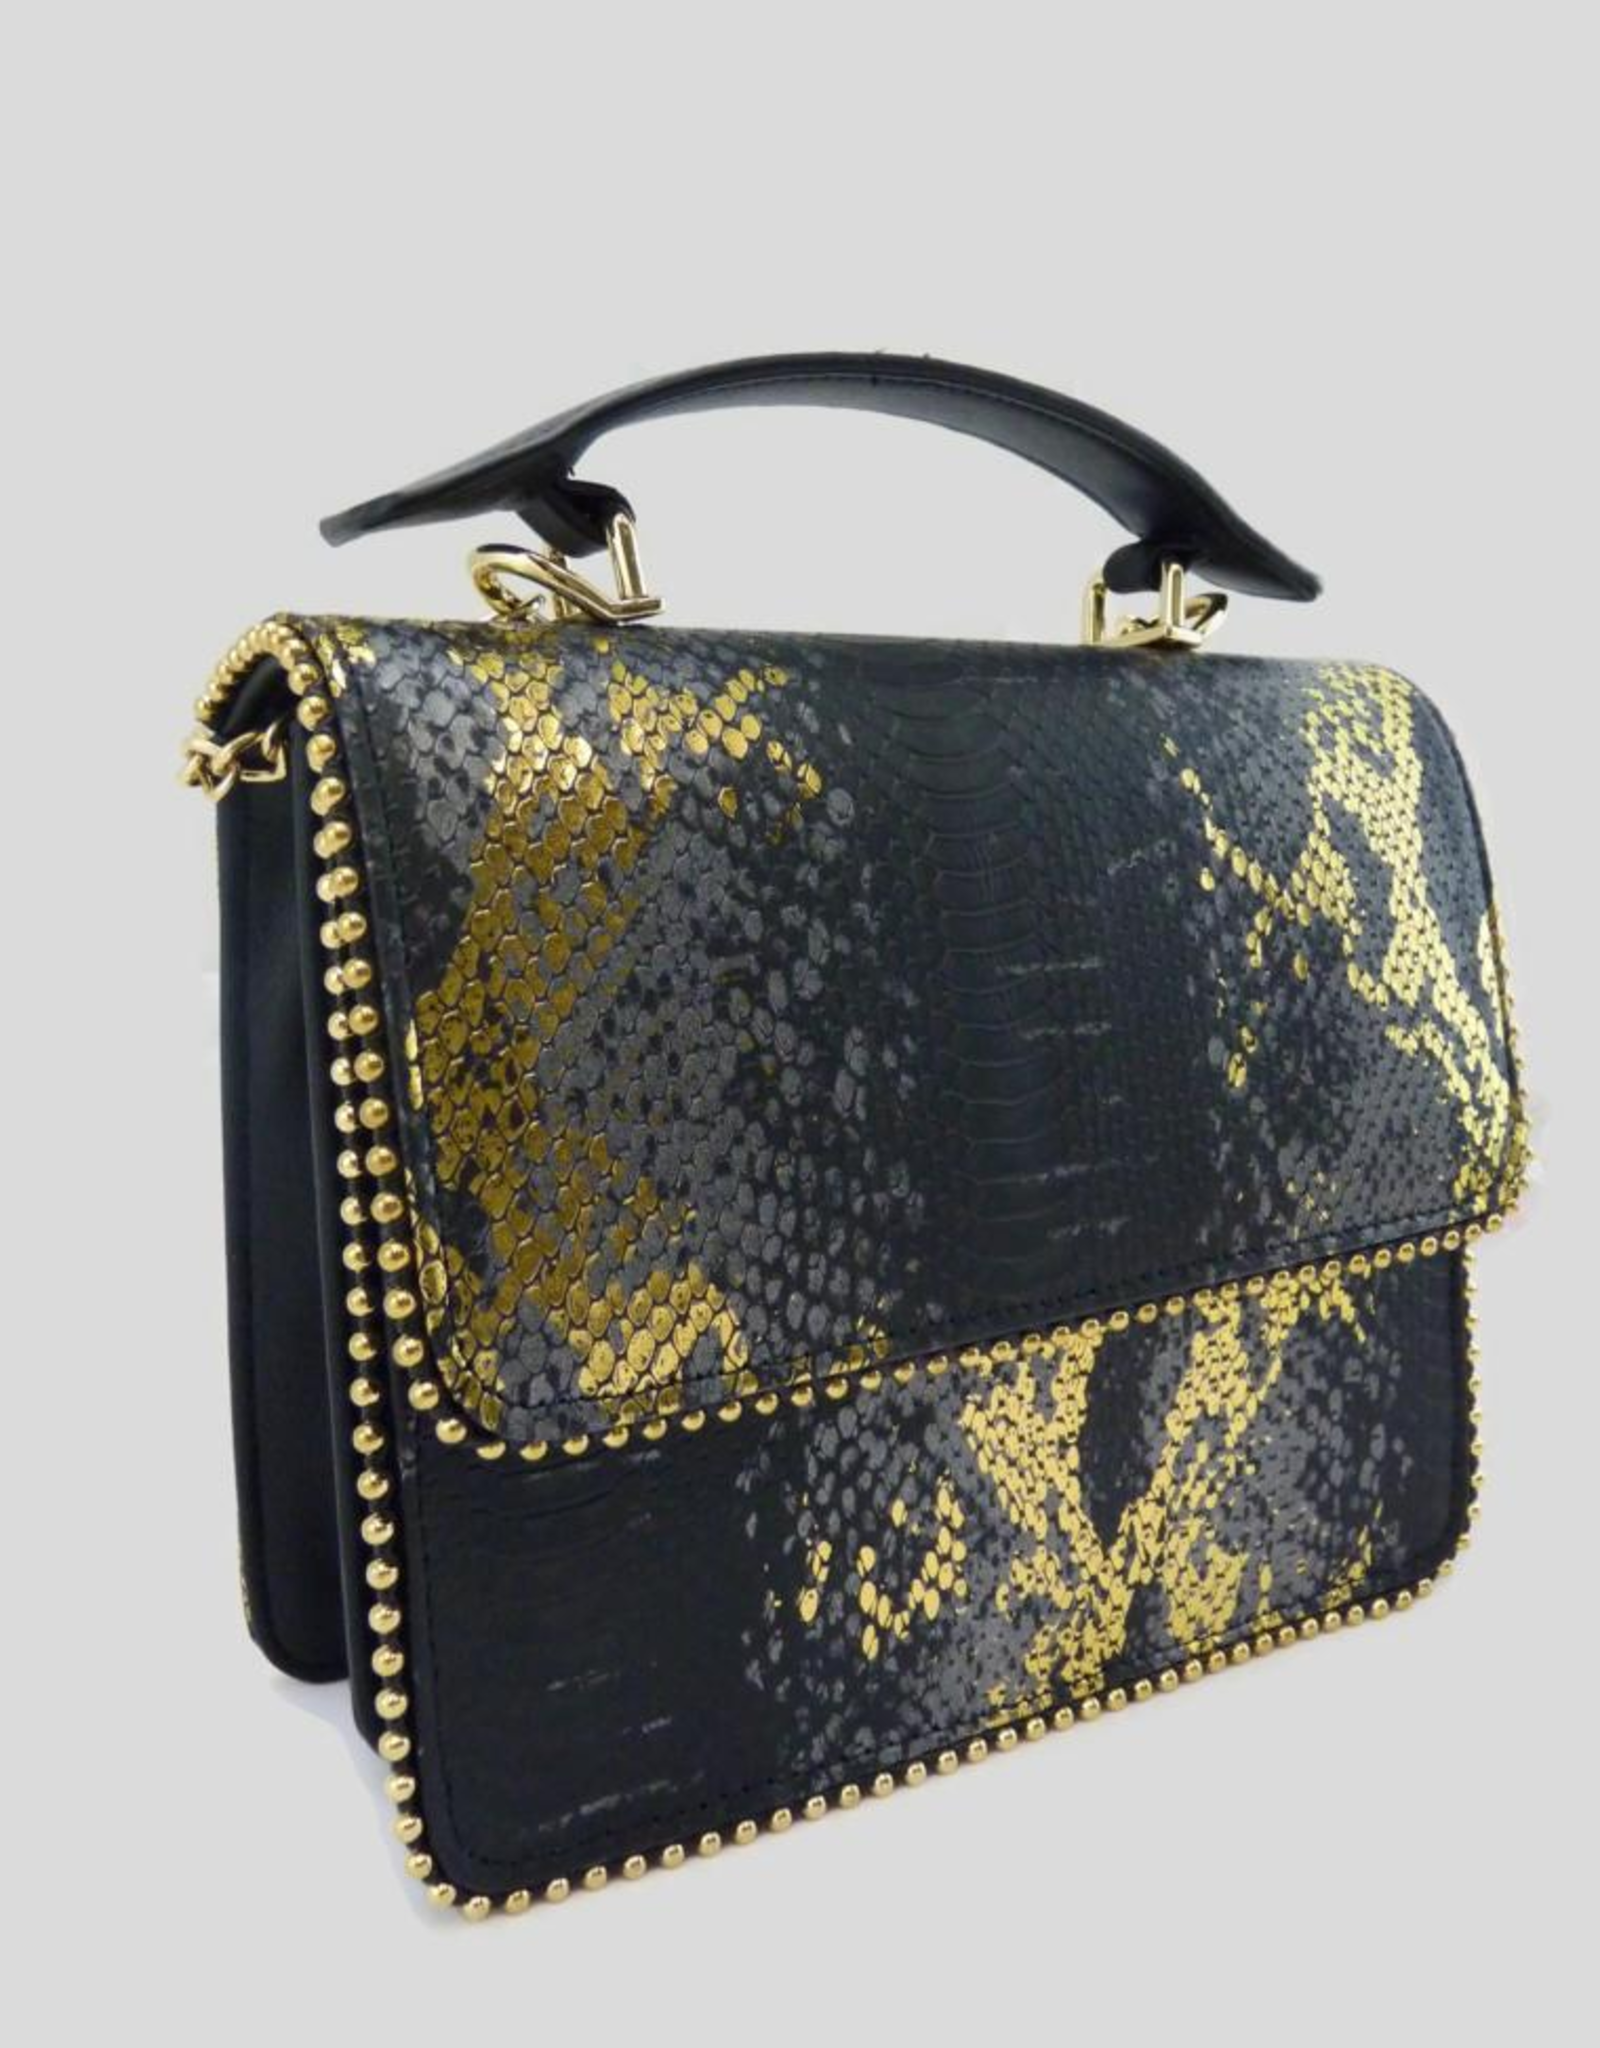 A Touch of Style Black Gold Metallic Snake Print Chain Crossbody